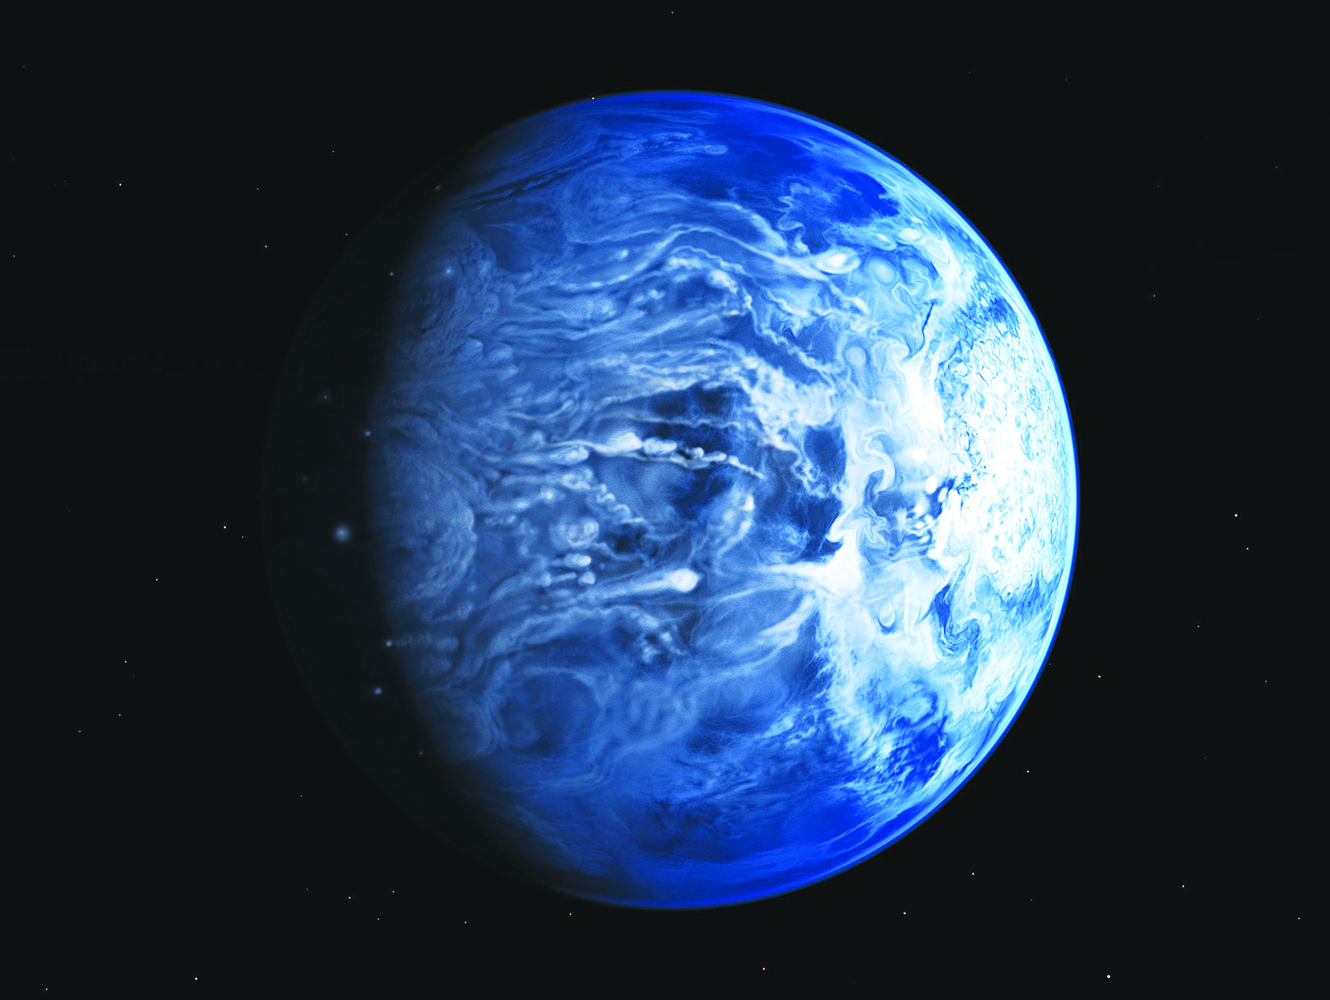 blue giant planet - photo #44